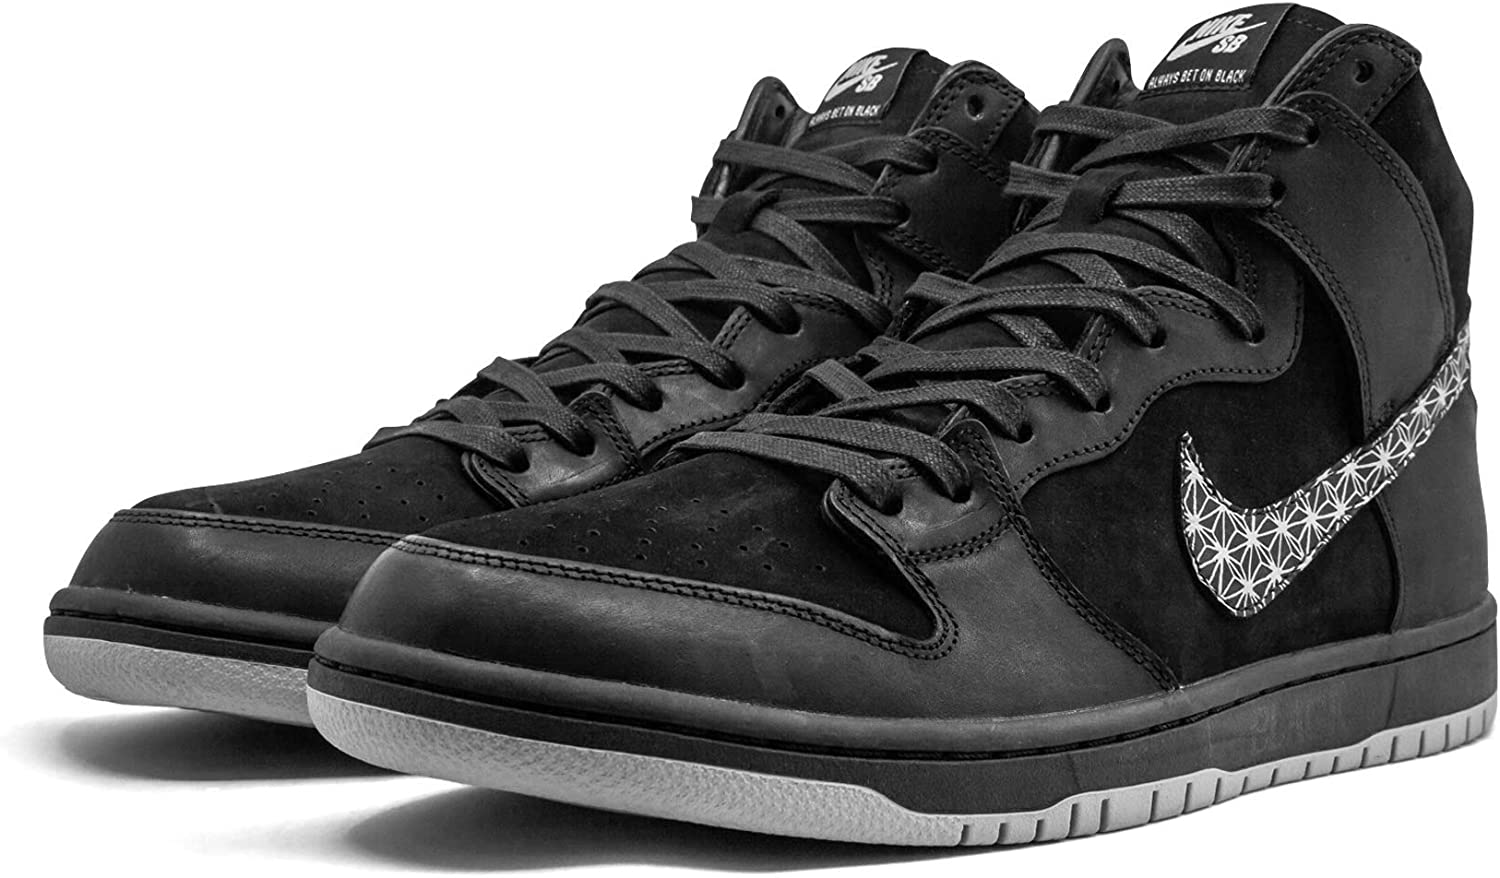 Destino lucha alquiler  Amazon.com | NIKE SB Zoom Dunk High Pro QS 'Black Bar' Size 10 | Fashion  Sneakers